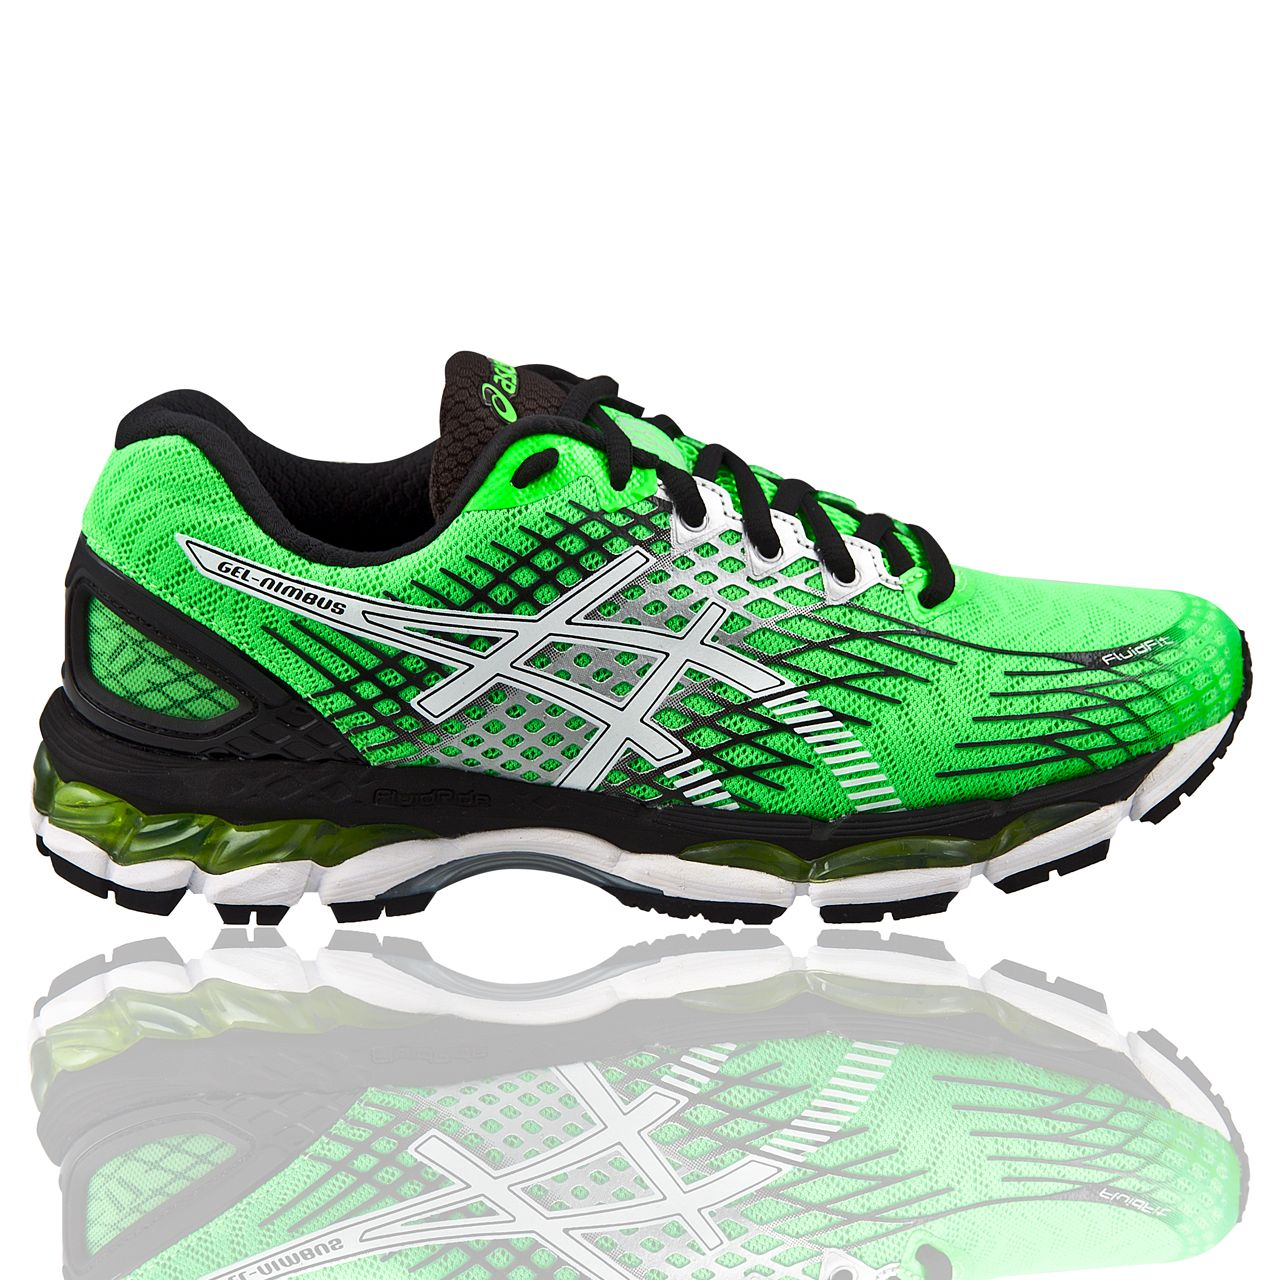 pin asics gel nimbus 10 on pinterest. Black Bedroom Furniture Sets. Home Design Ideas